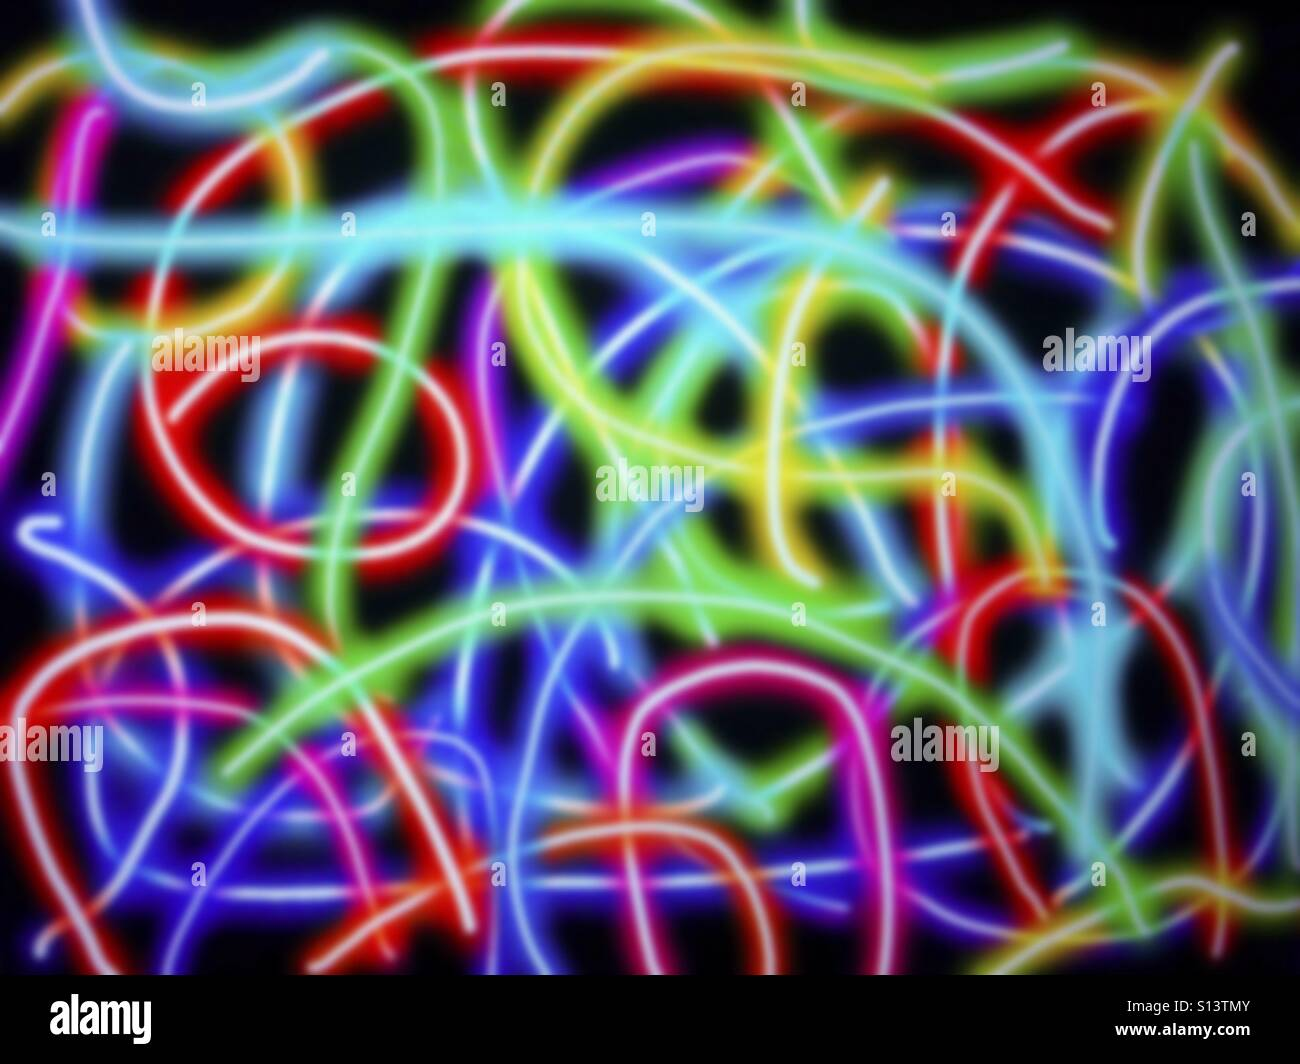 Light effects. - Stock Image